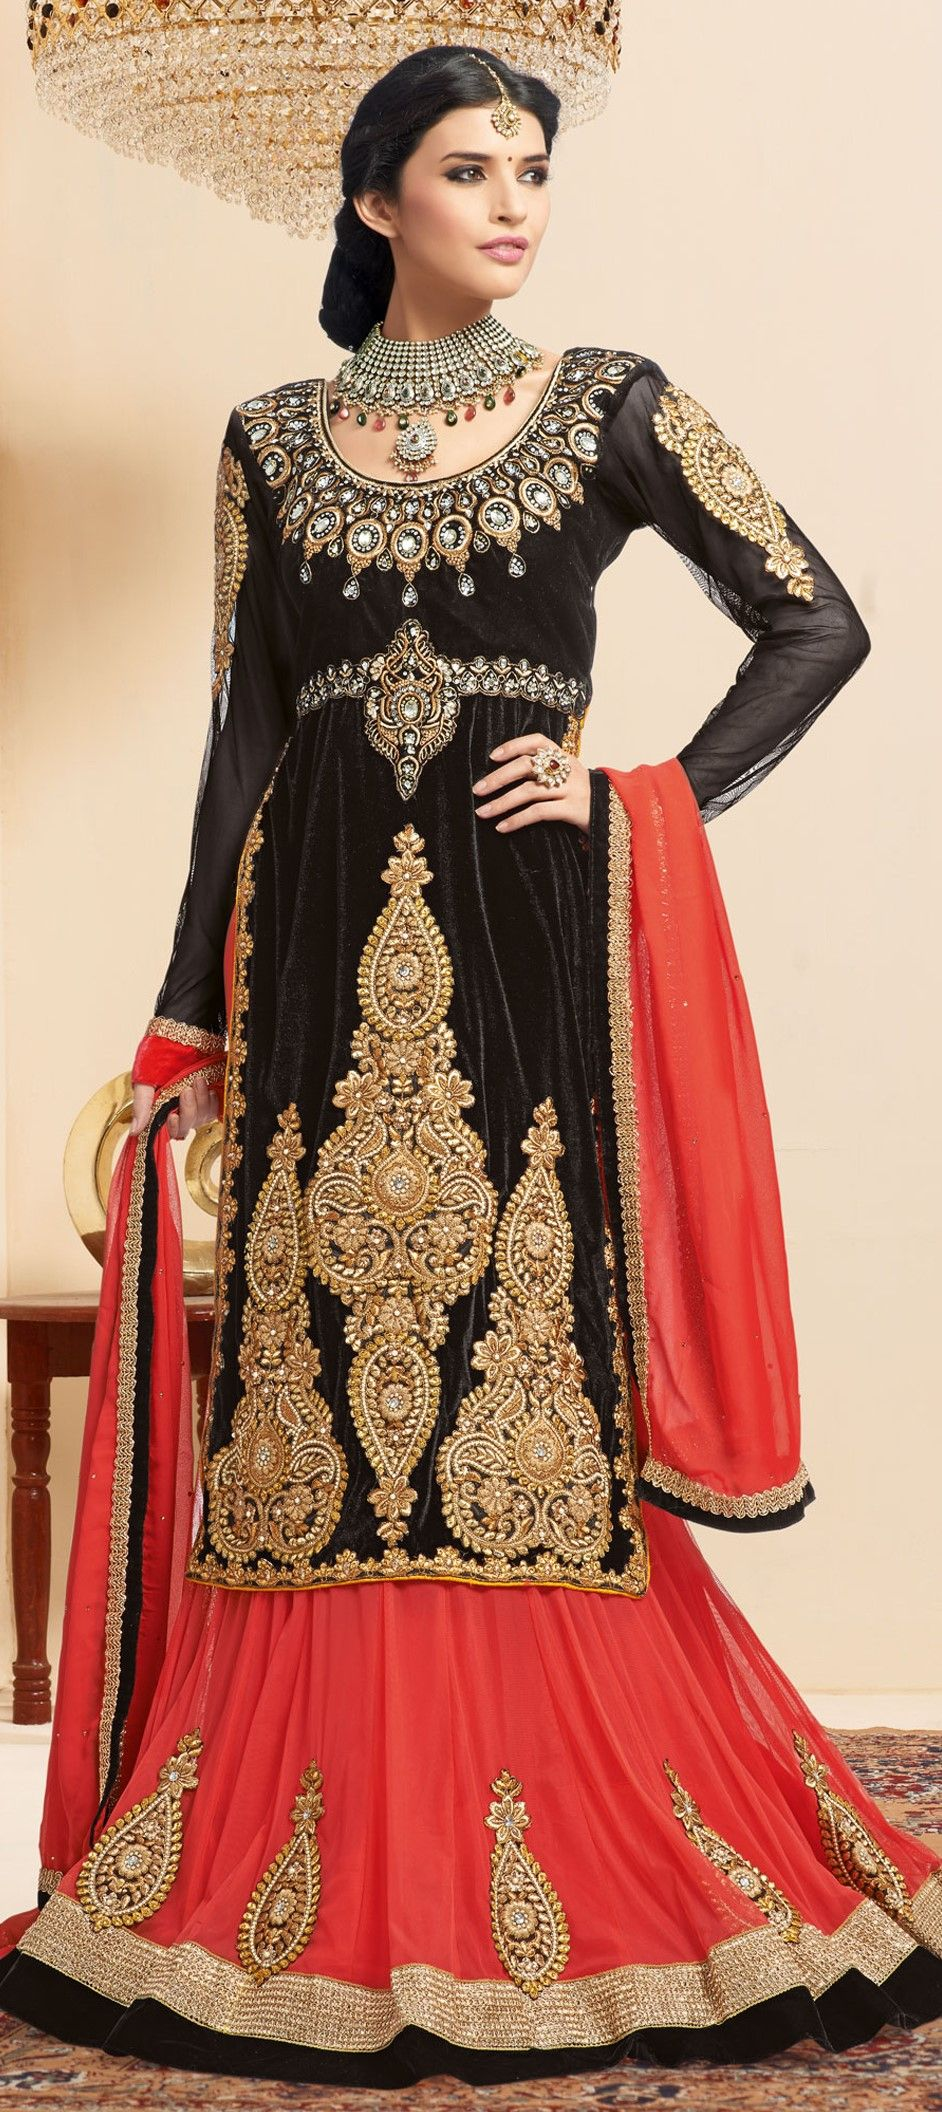 151018: Black and Grey, Red and Maroon color family Long Lehenga ...